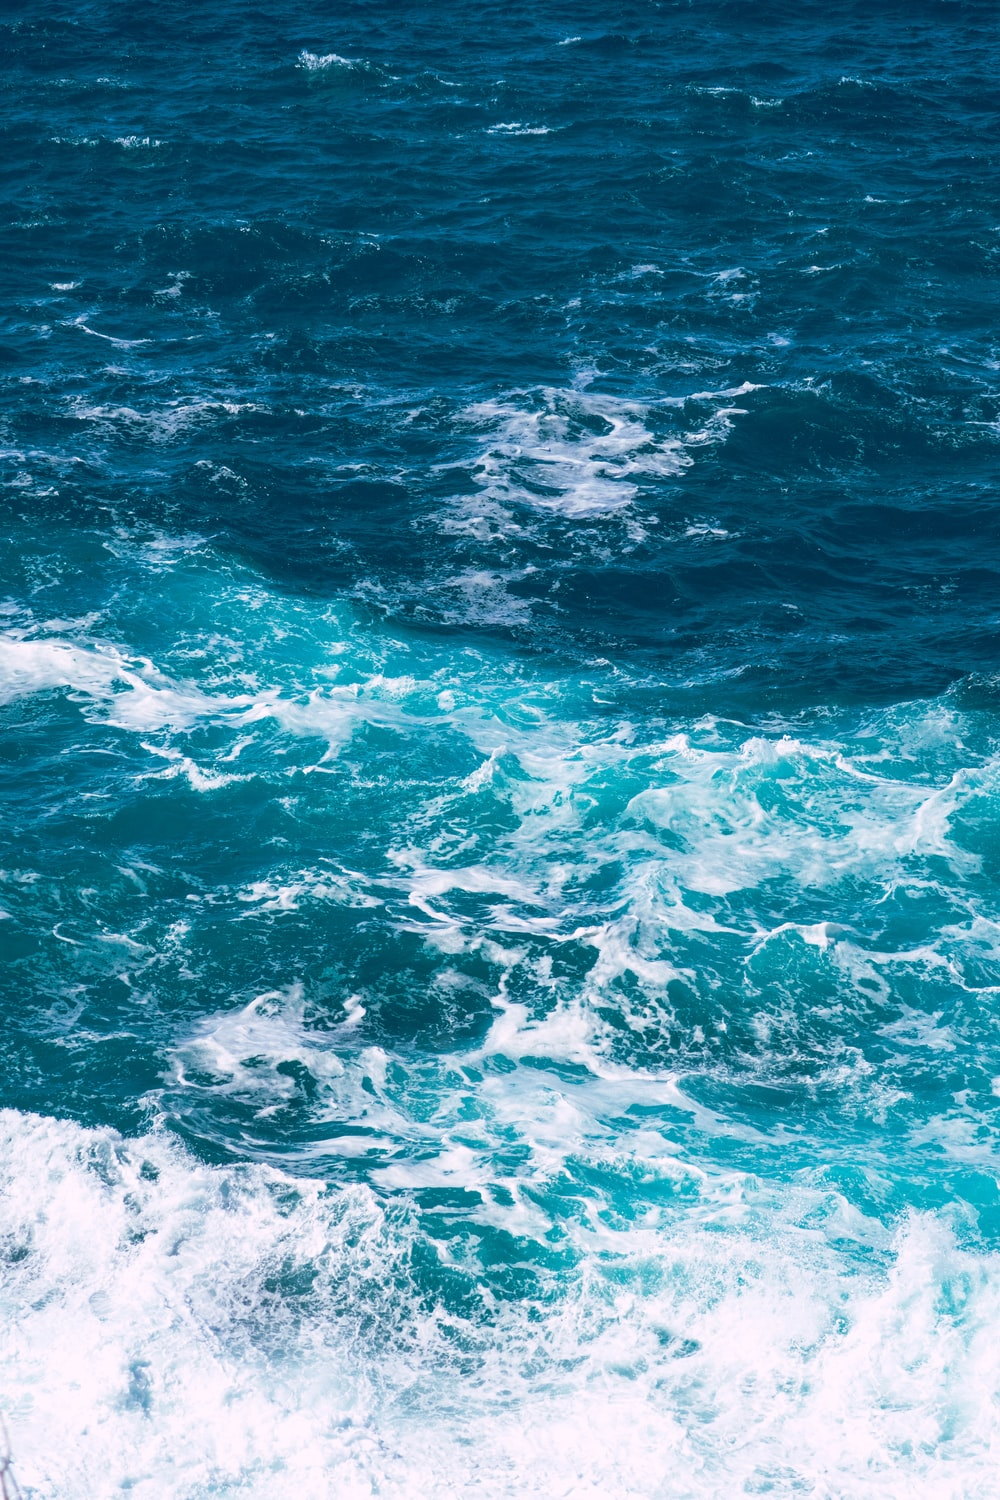 ocean wave in shallow focus photography